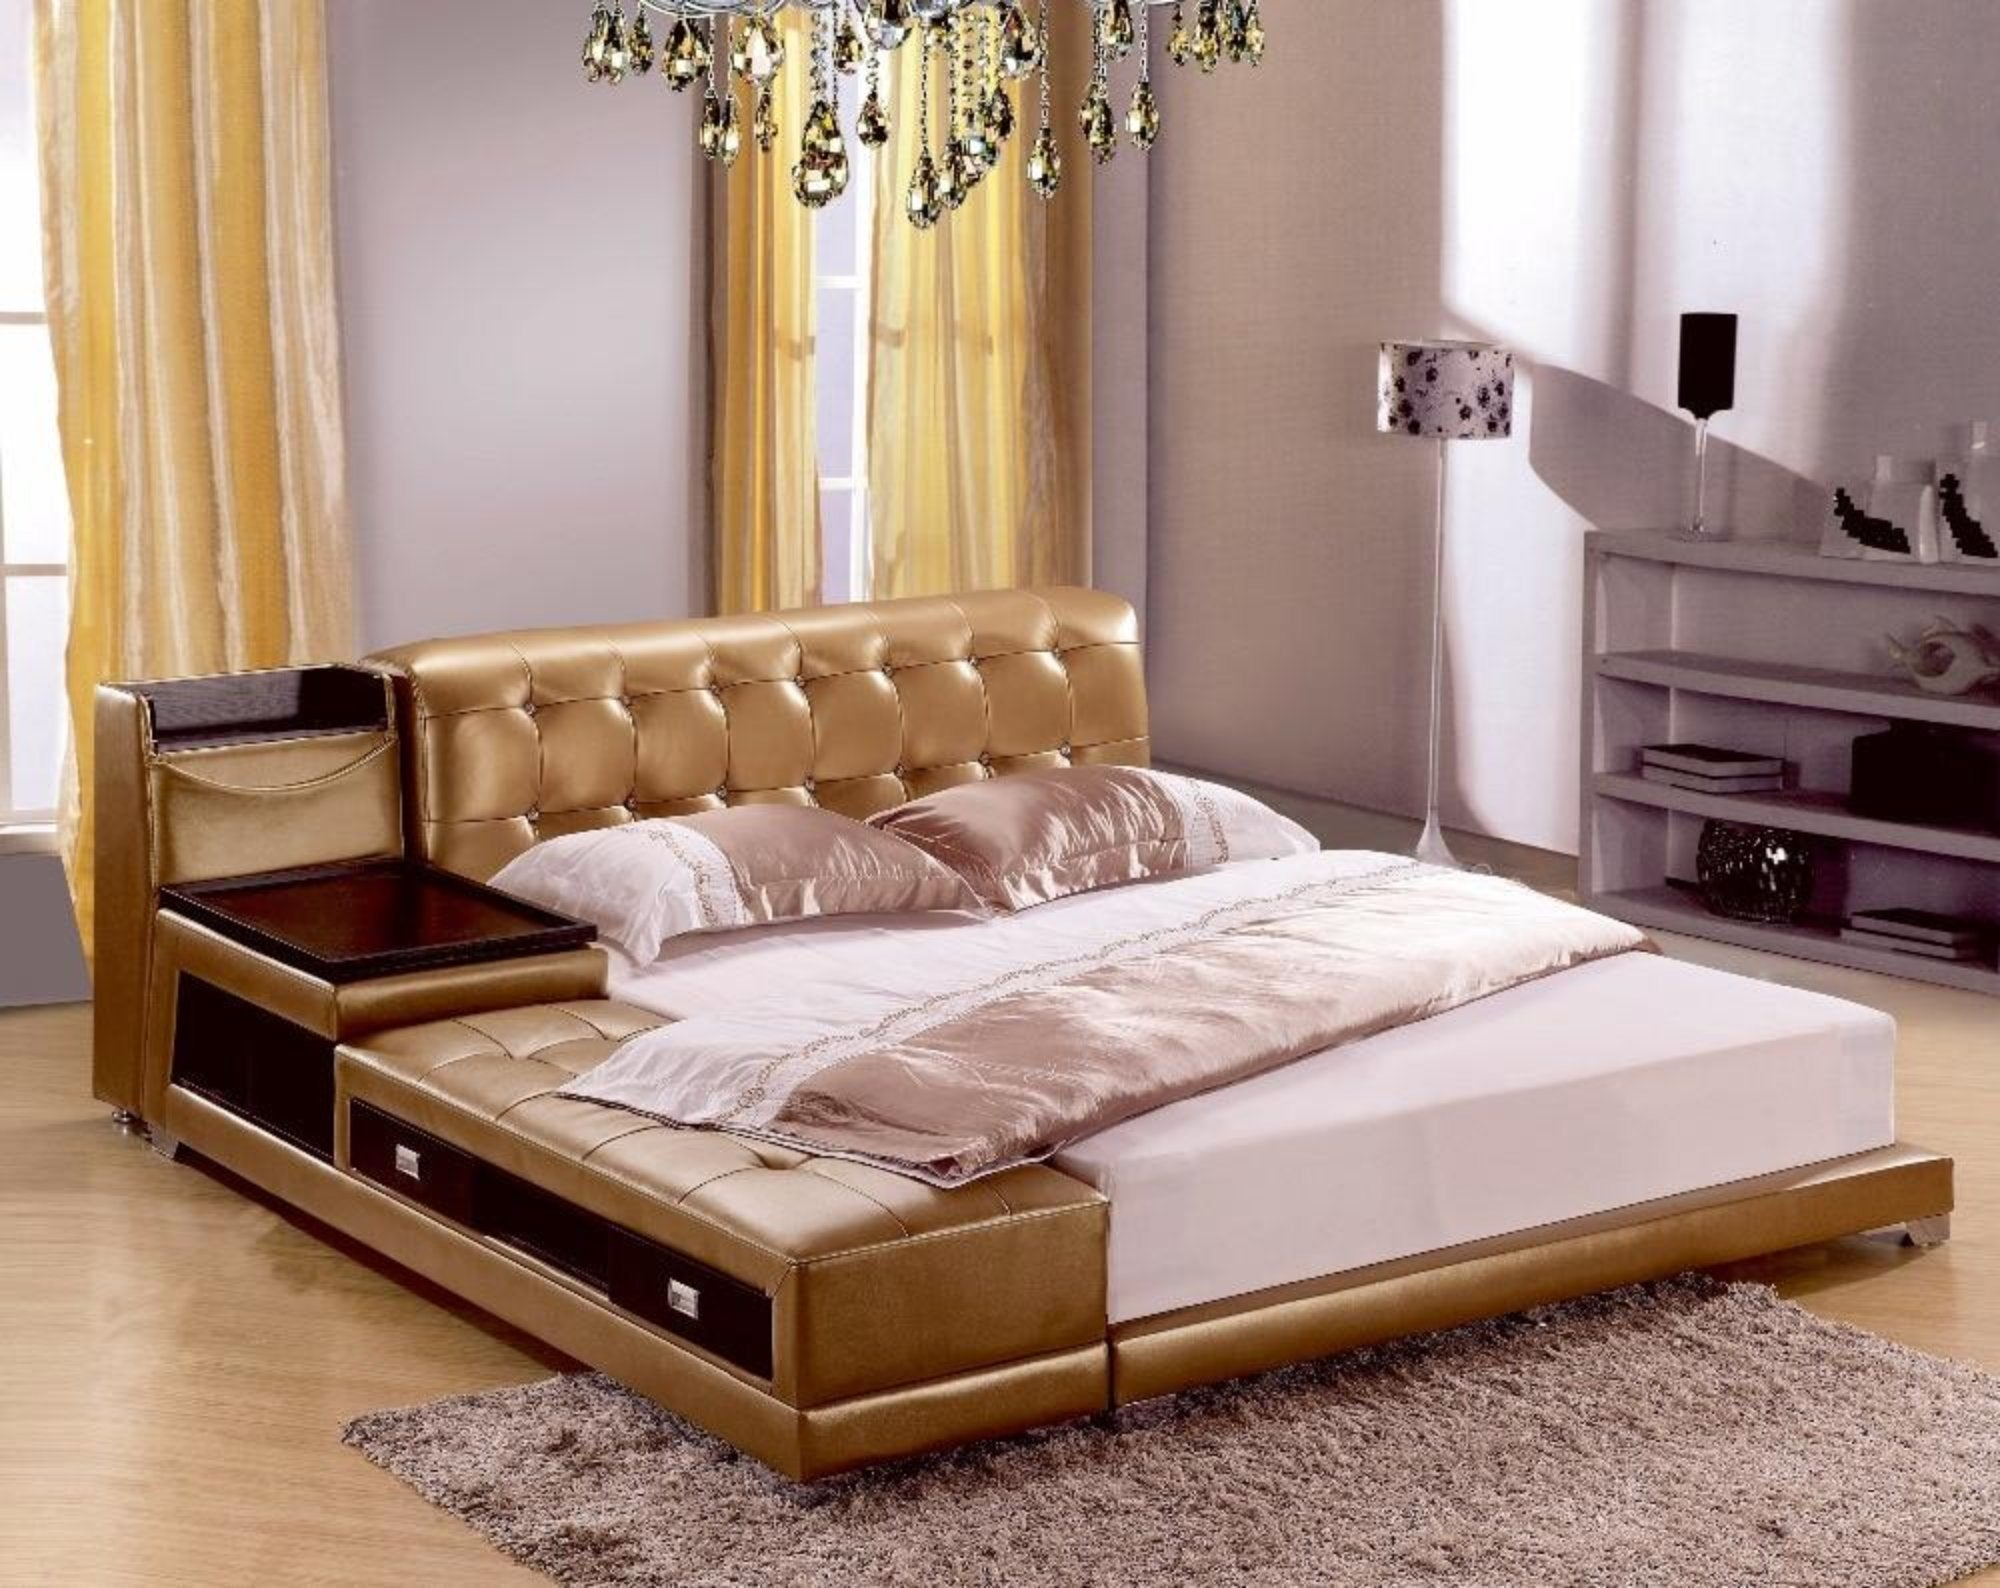 Modern Leather Bed With Storage Box and Side Board   My Aashis